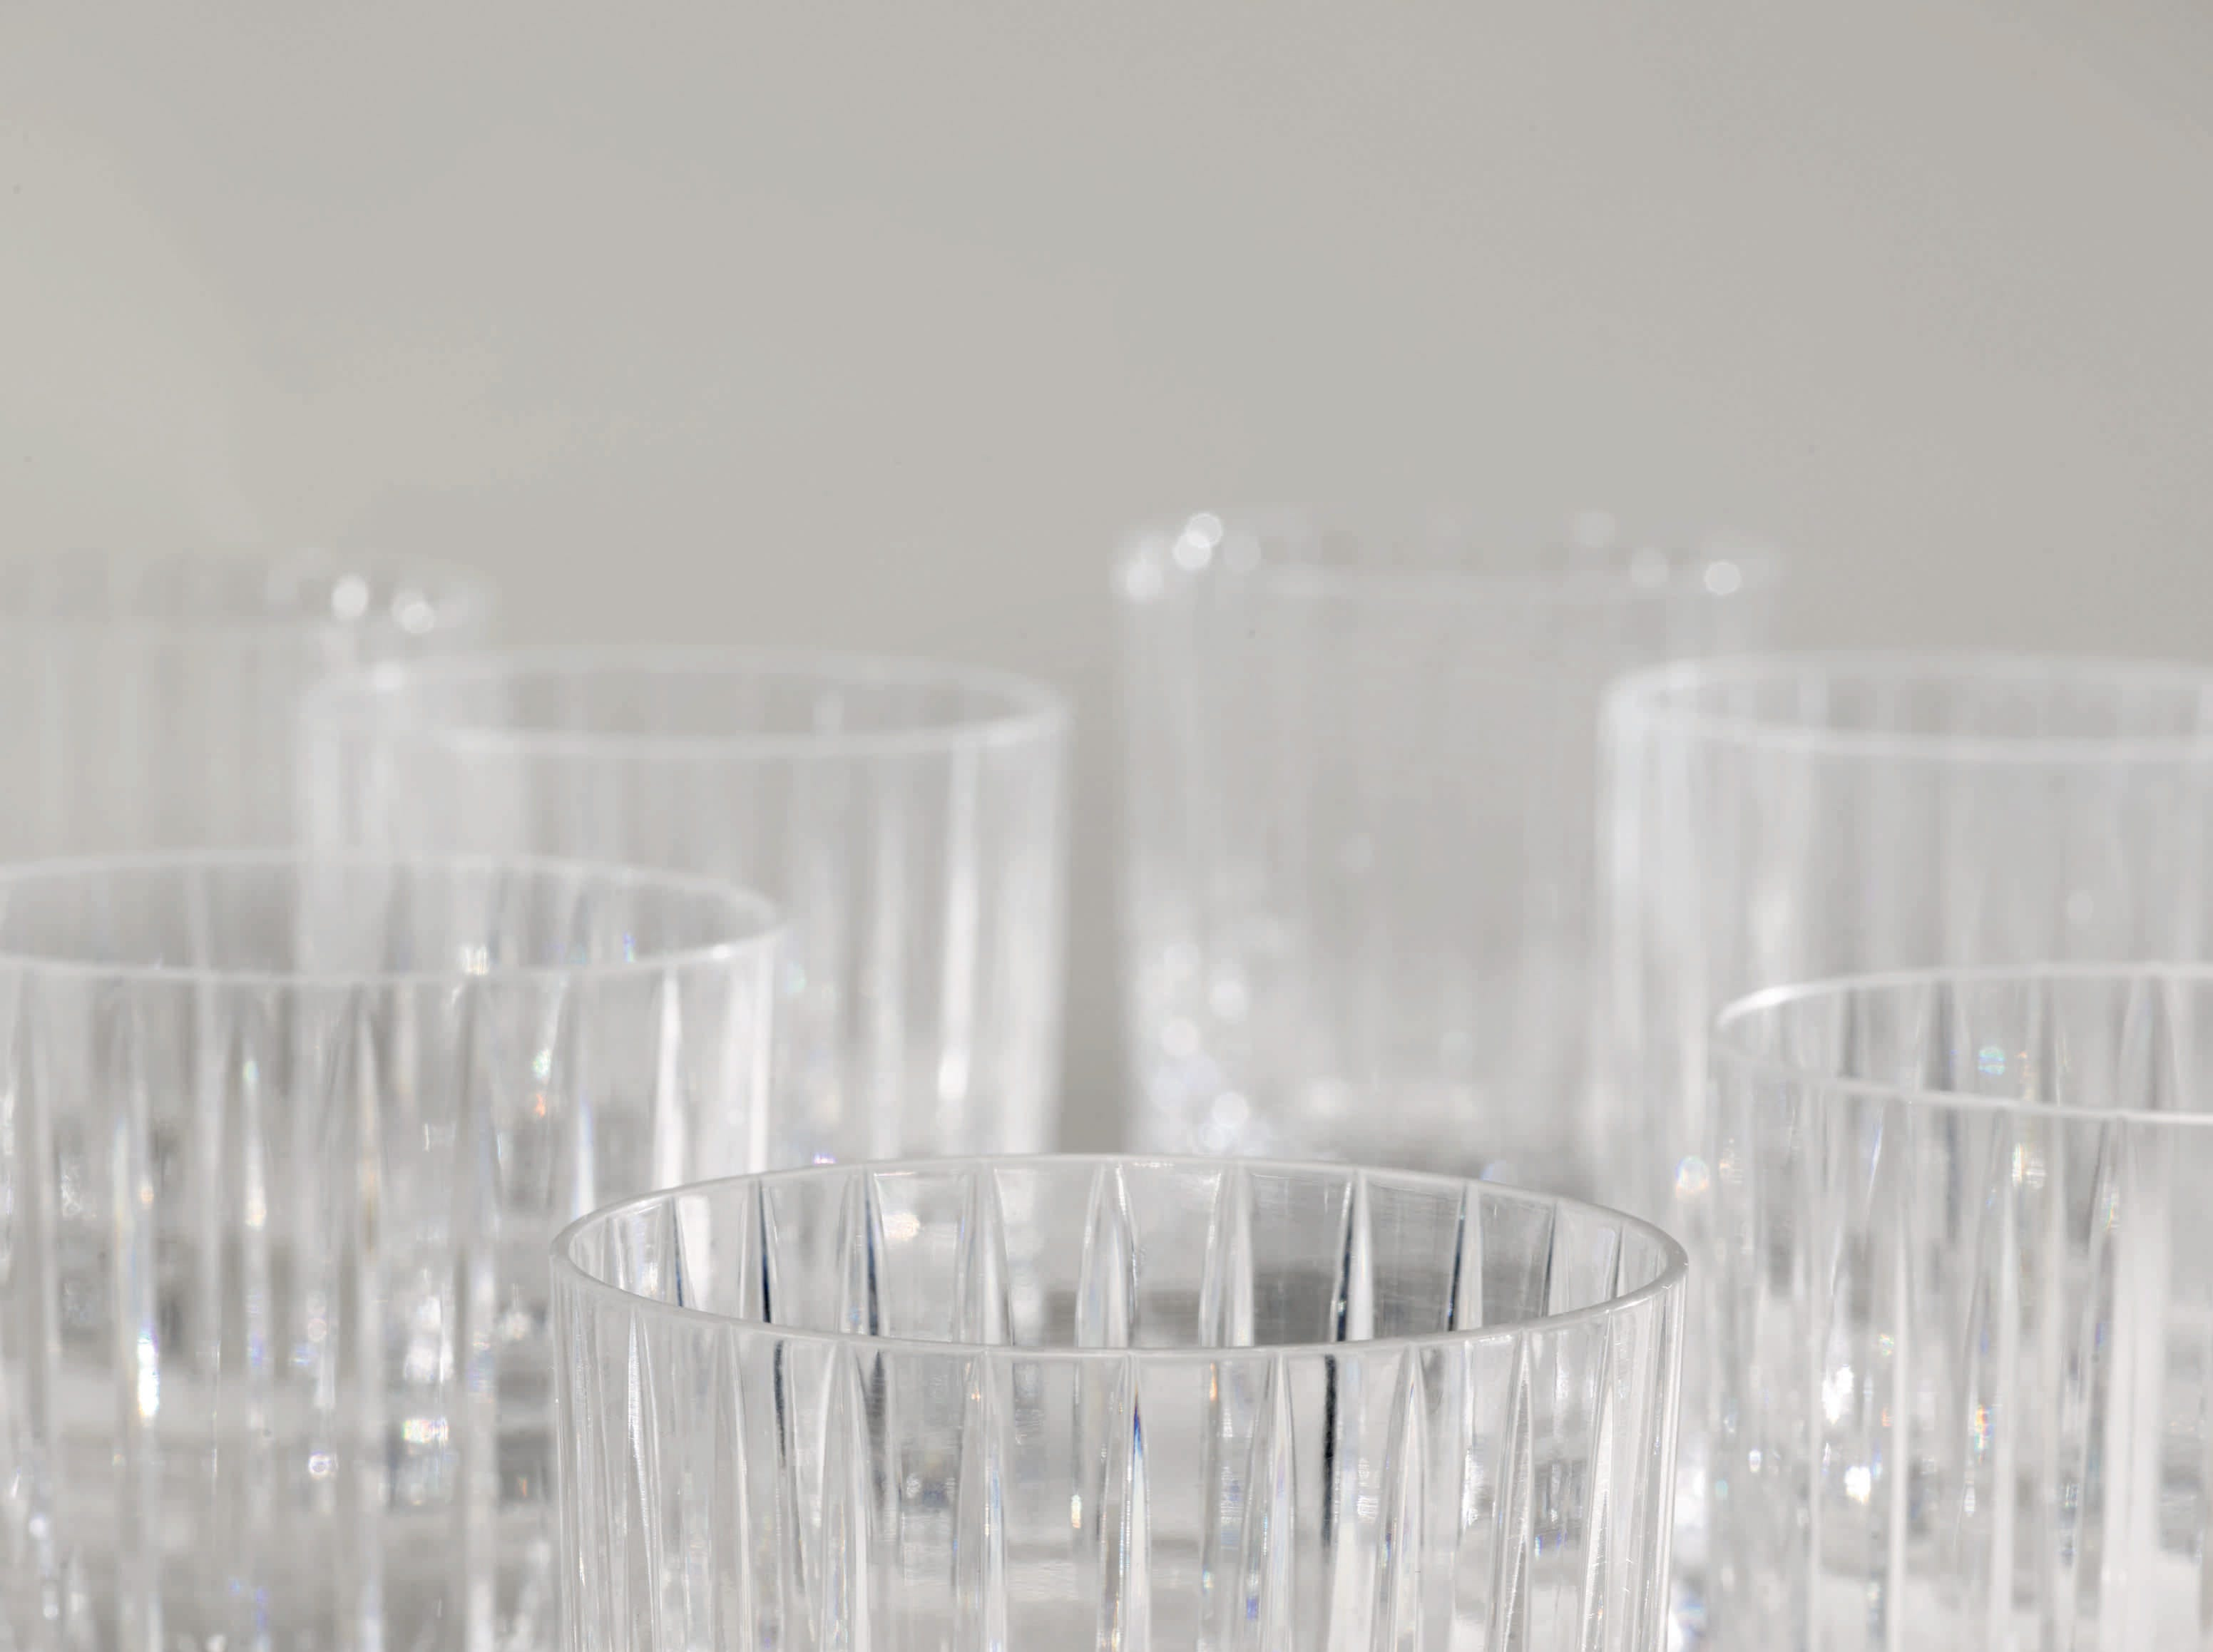 Baccarat cut glass Harmonie tumblers from the Sinatra collection